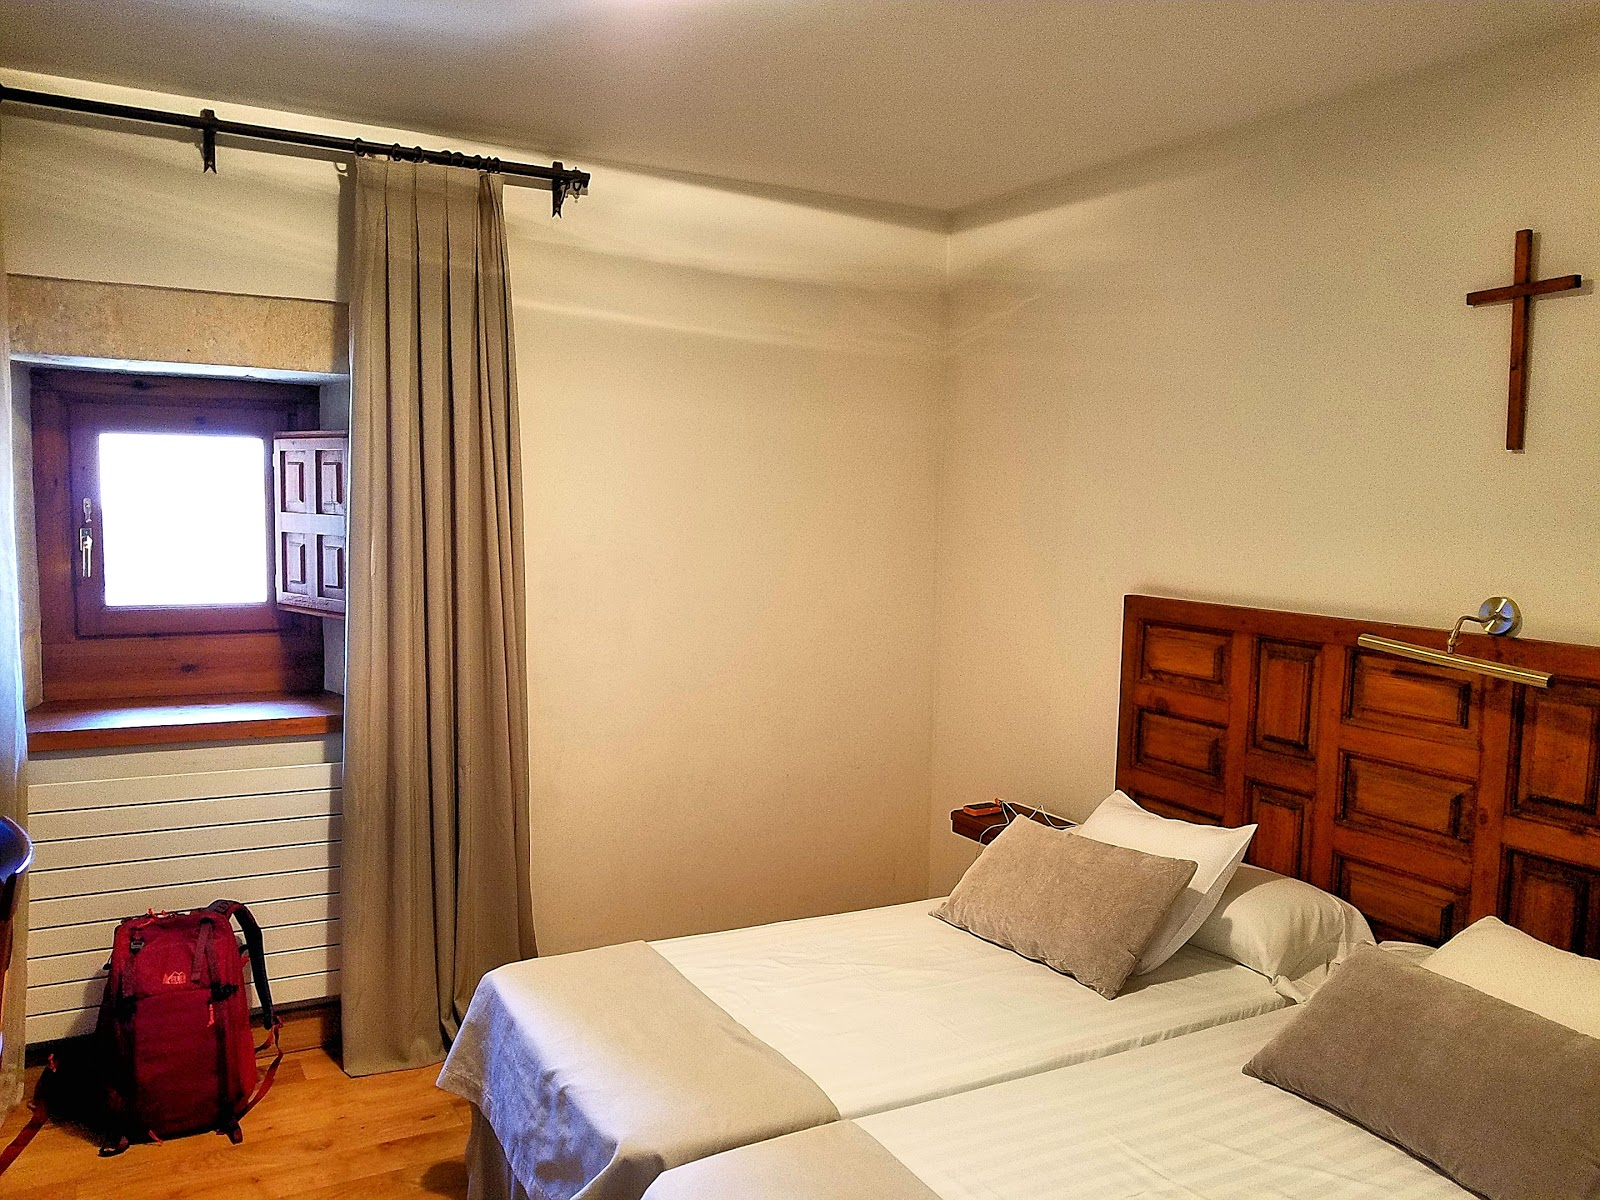 My humble room at the monastery was simple in its appointments but for that one special night, I was transported back to the life of an 11th-century monk, and slept as soundly and peacefully.